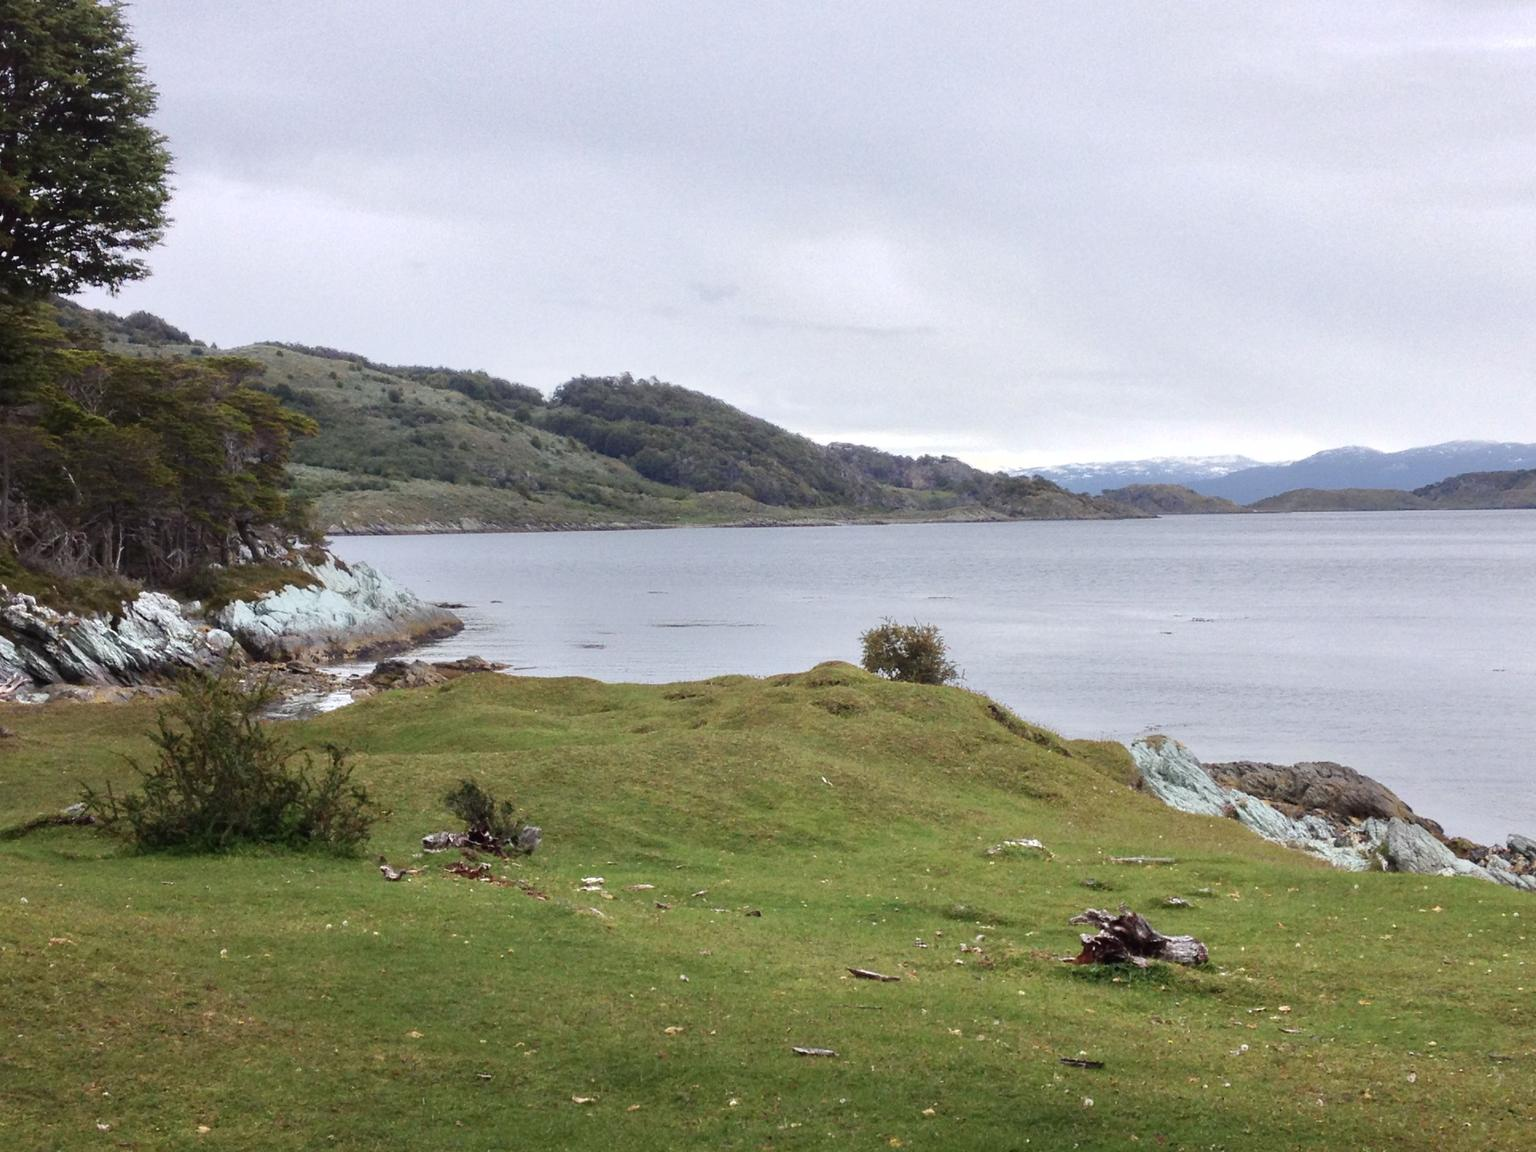 MÁS FOTOS, 3-Day Adventure Tour of Ushuaia: Hiking, Canoeing and Sailing at the End of the World